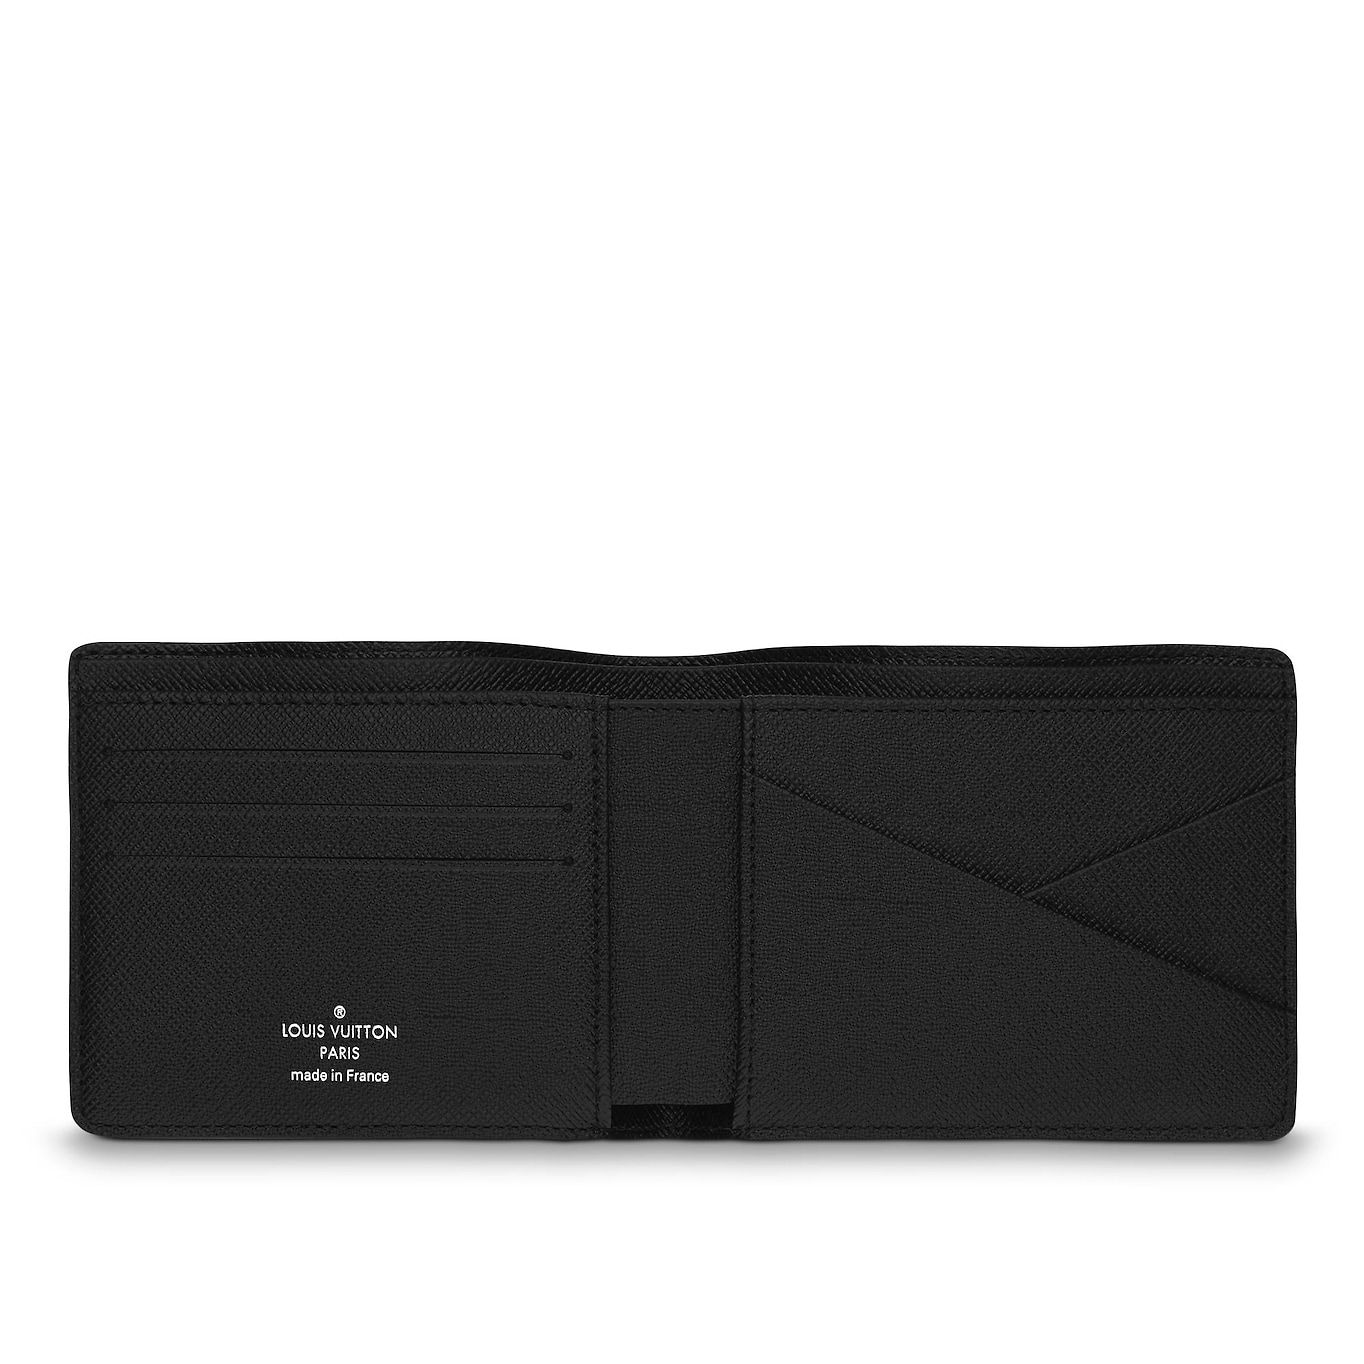 eaade9111274 View 3 - Damier Graphite Canvas PERSONALIZATION HOTSTAMPING Multiple Wallet